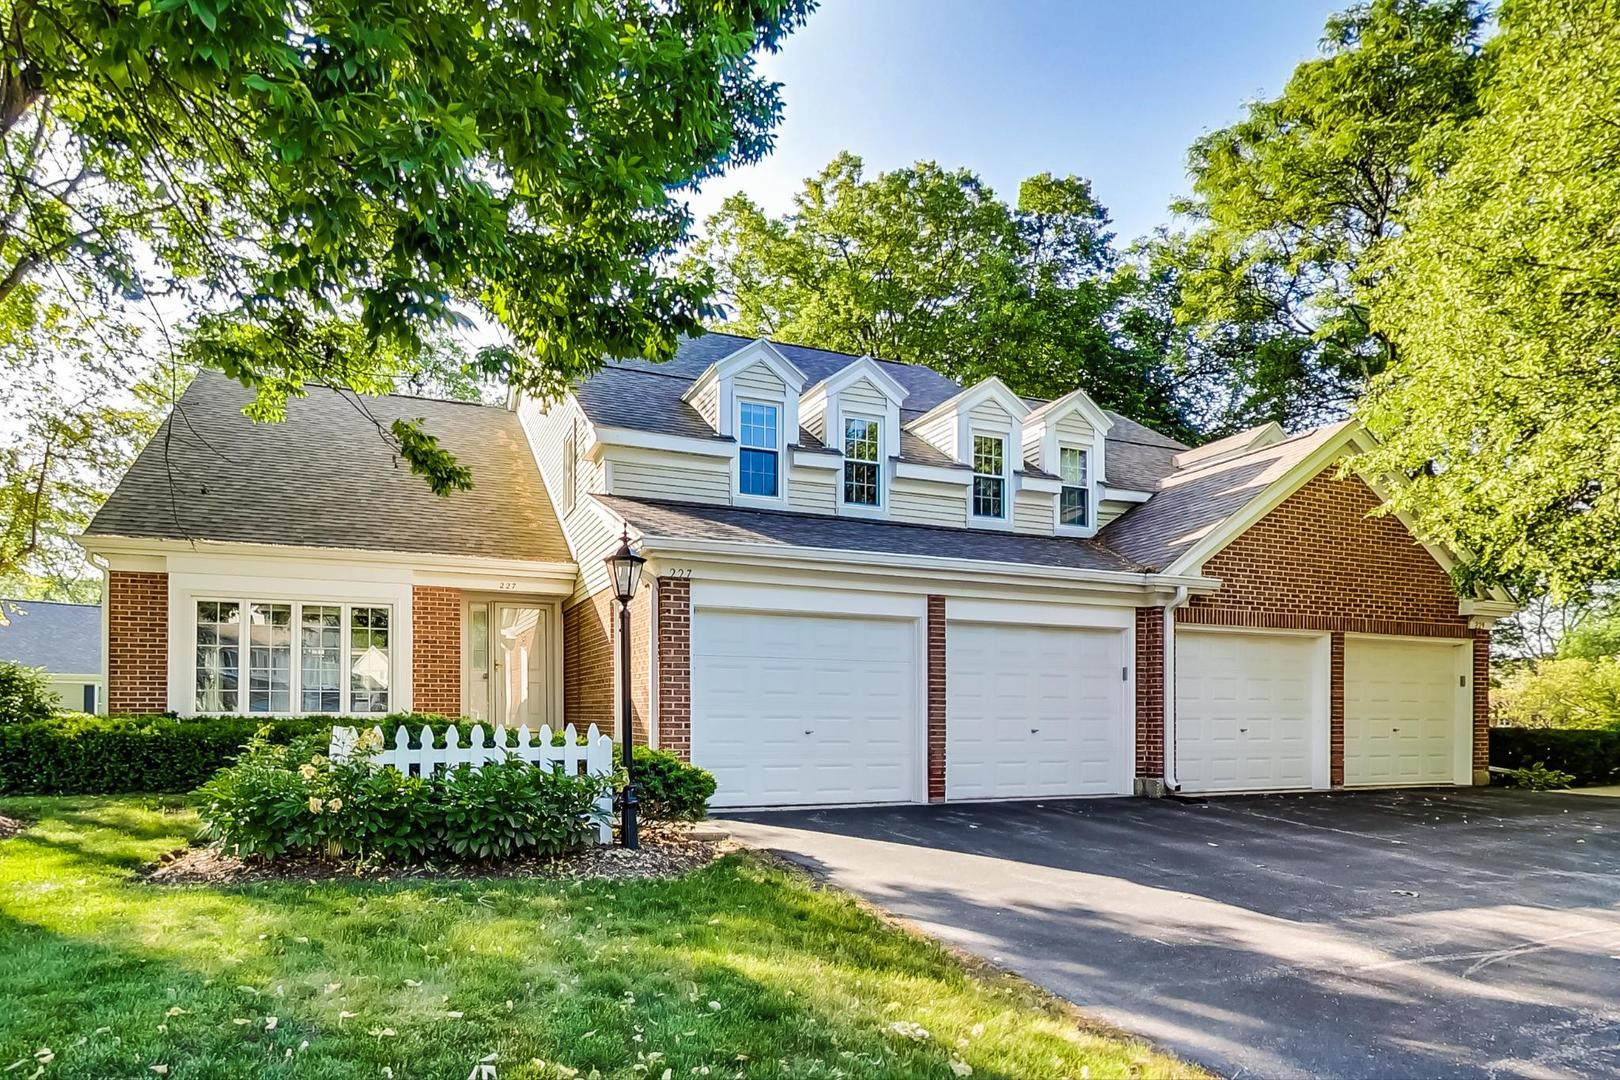 227 COUNTRY CLUB Drive, Prospect Heights, IL 60070 - #: 11077043